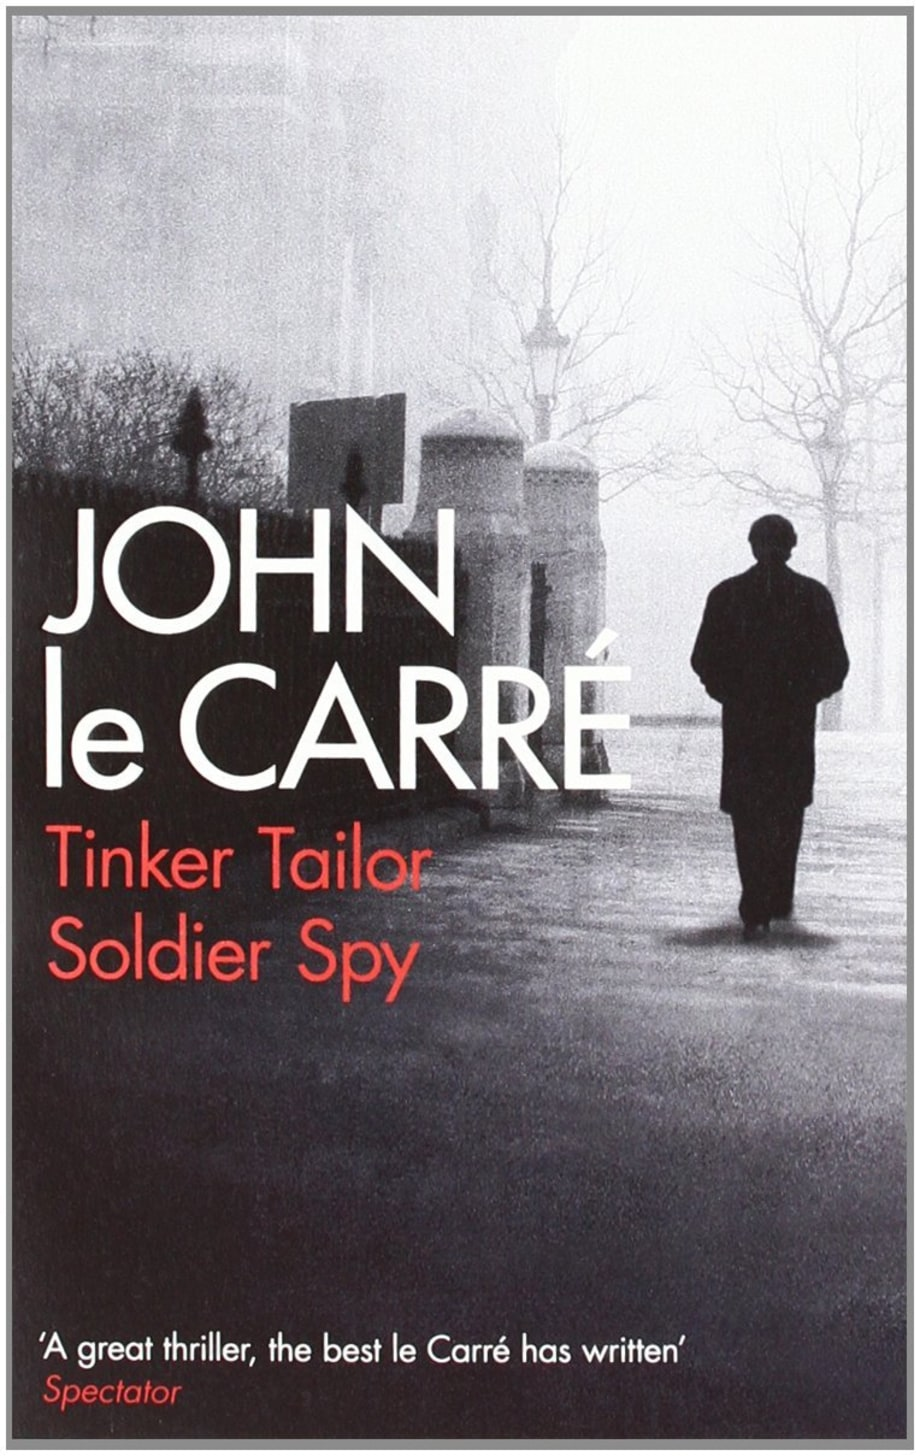 For the Guy Who's Sick of Bond: Tinker Tailor Soldier Spy by John le Carré